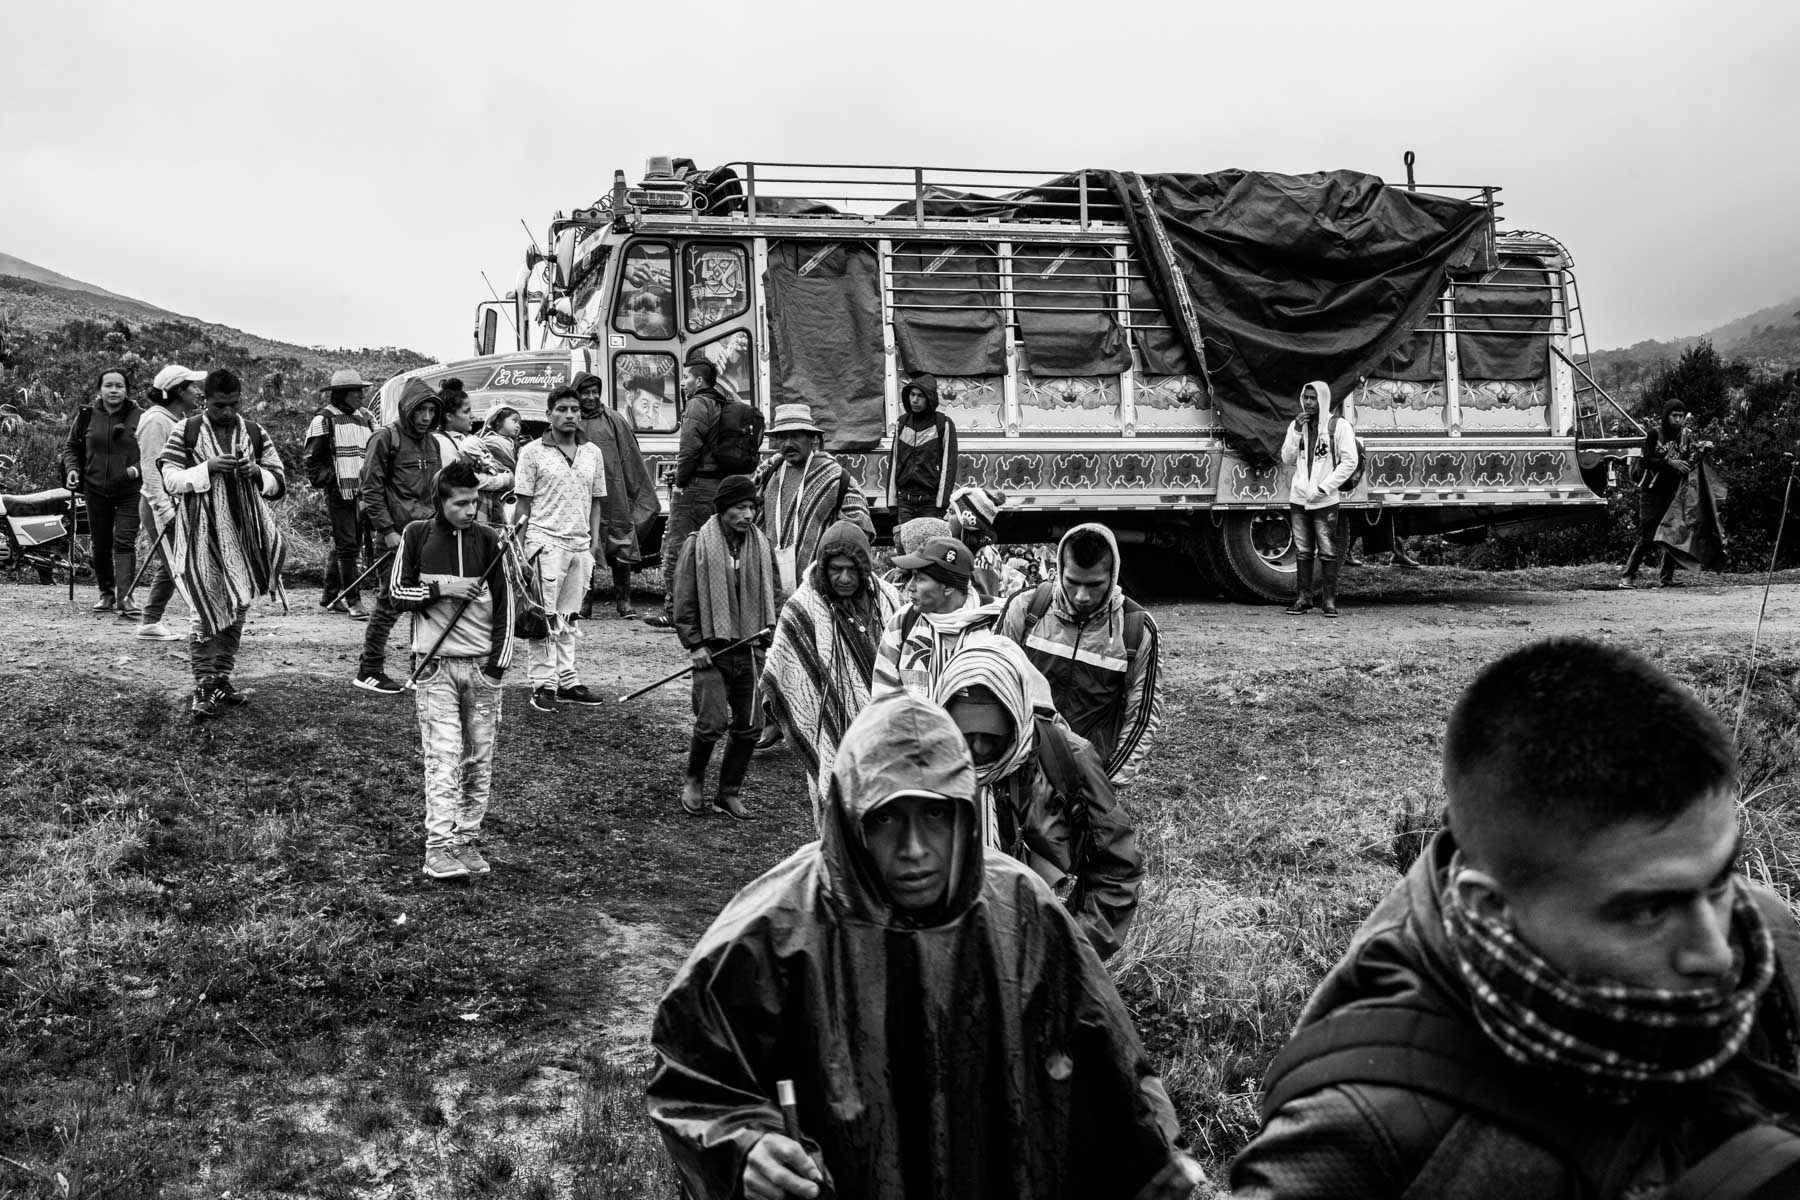 """Members of the Nasa indigenous  community of Tacueyó get out of the 'chiva' (bus) in the Páramo of Pisnos to start the celebration of the 'Khabu fxizehnxi' ('Refreshing of the Batons""""), one of the five main rituals of the Nasa indigenous people of the Cauca region in Colombia.  Cauca region, Colombia, January 2019."""